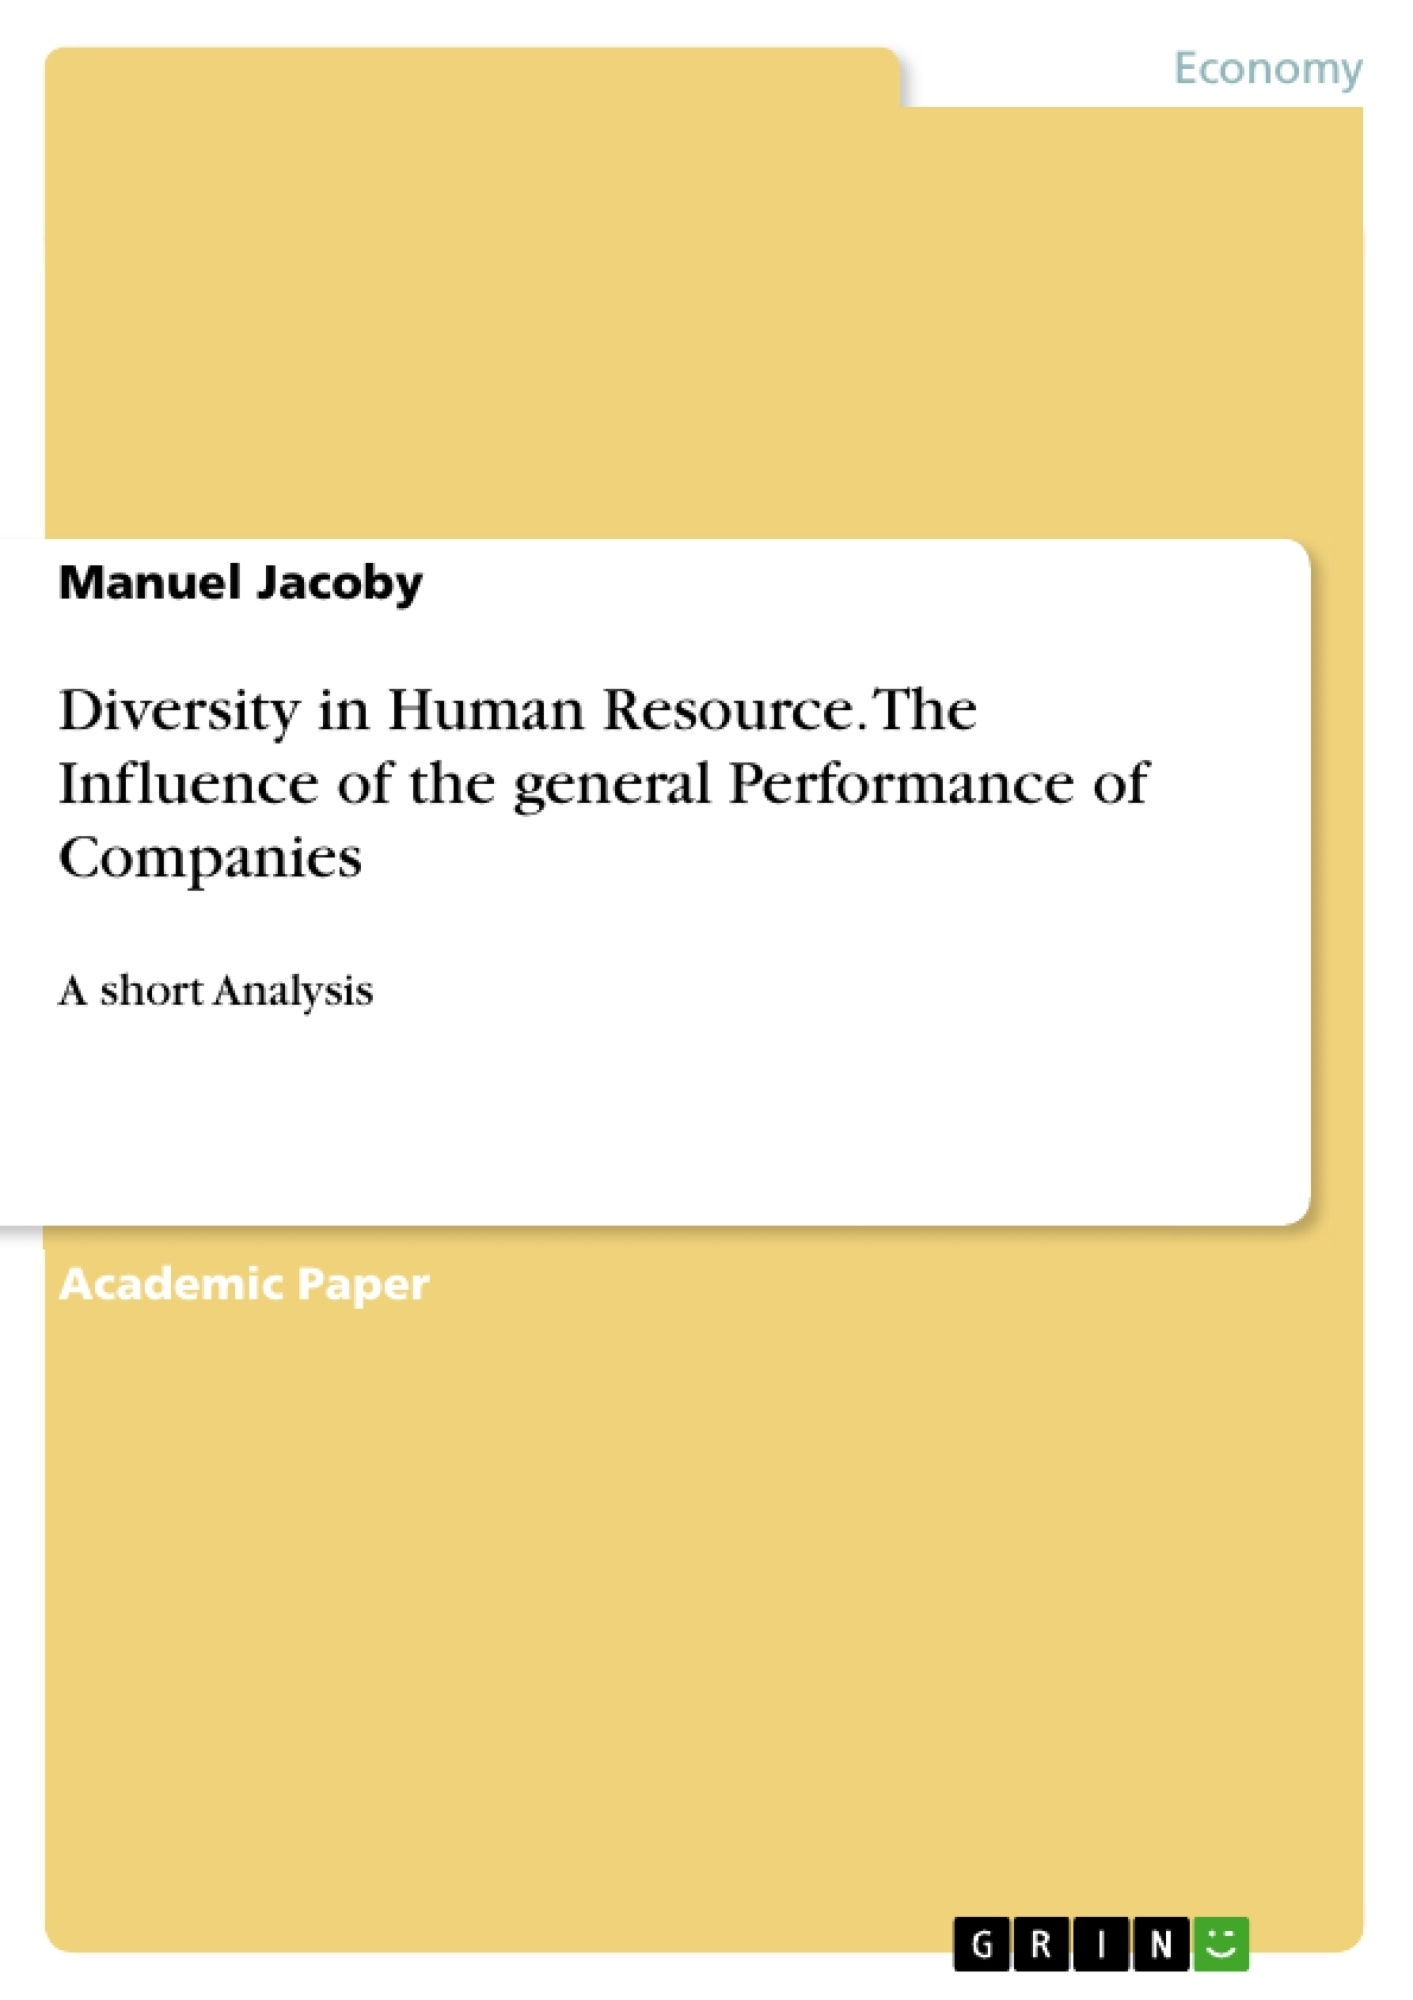 Title: Diversity in Human Resource. The Influence of the general Performance of Companies